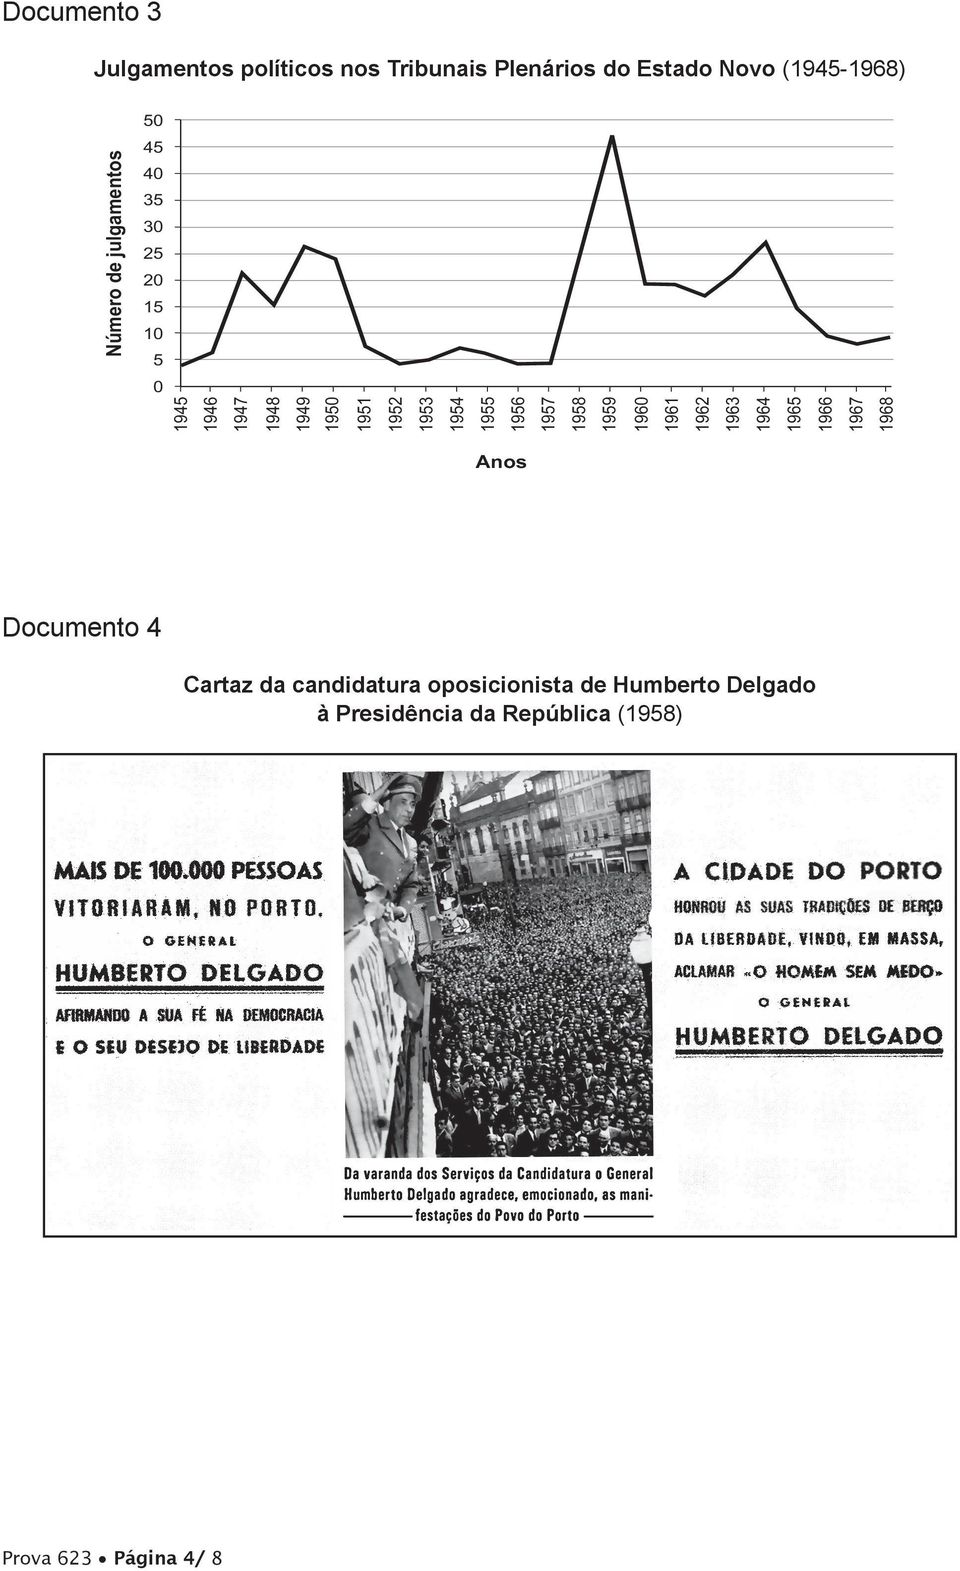 1955 1956 1957 1958 1959 1960 1961 1962 1963 1964 1965 1966 1967 1968 Anos Documento 4 Cartaz da